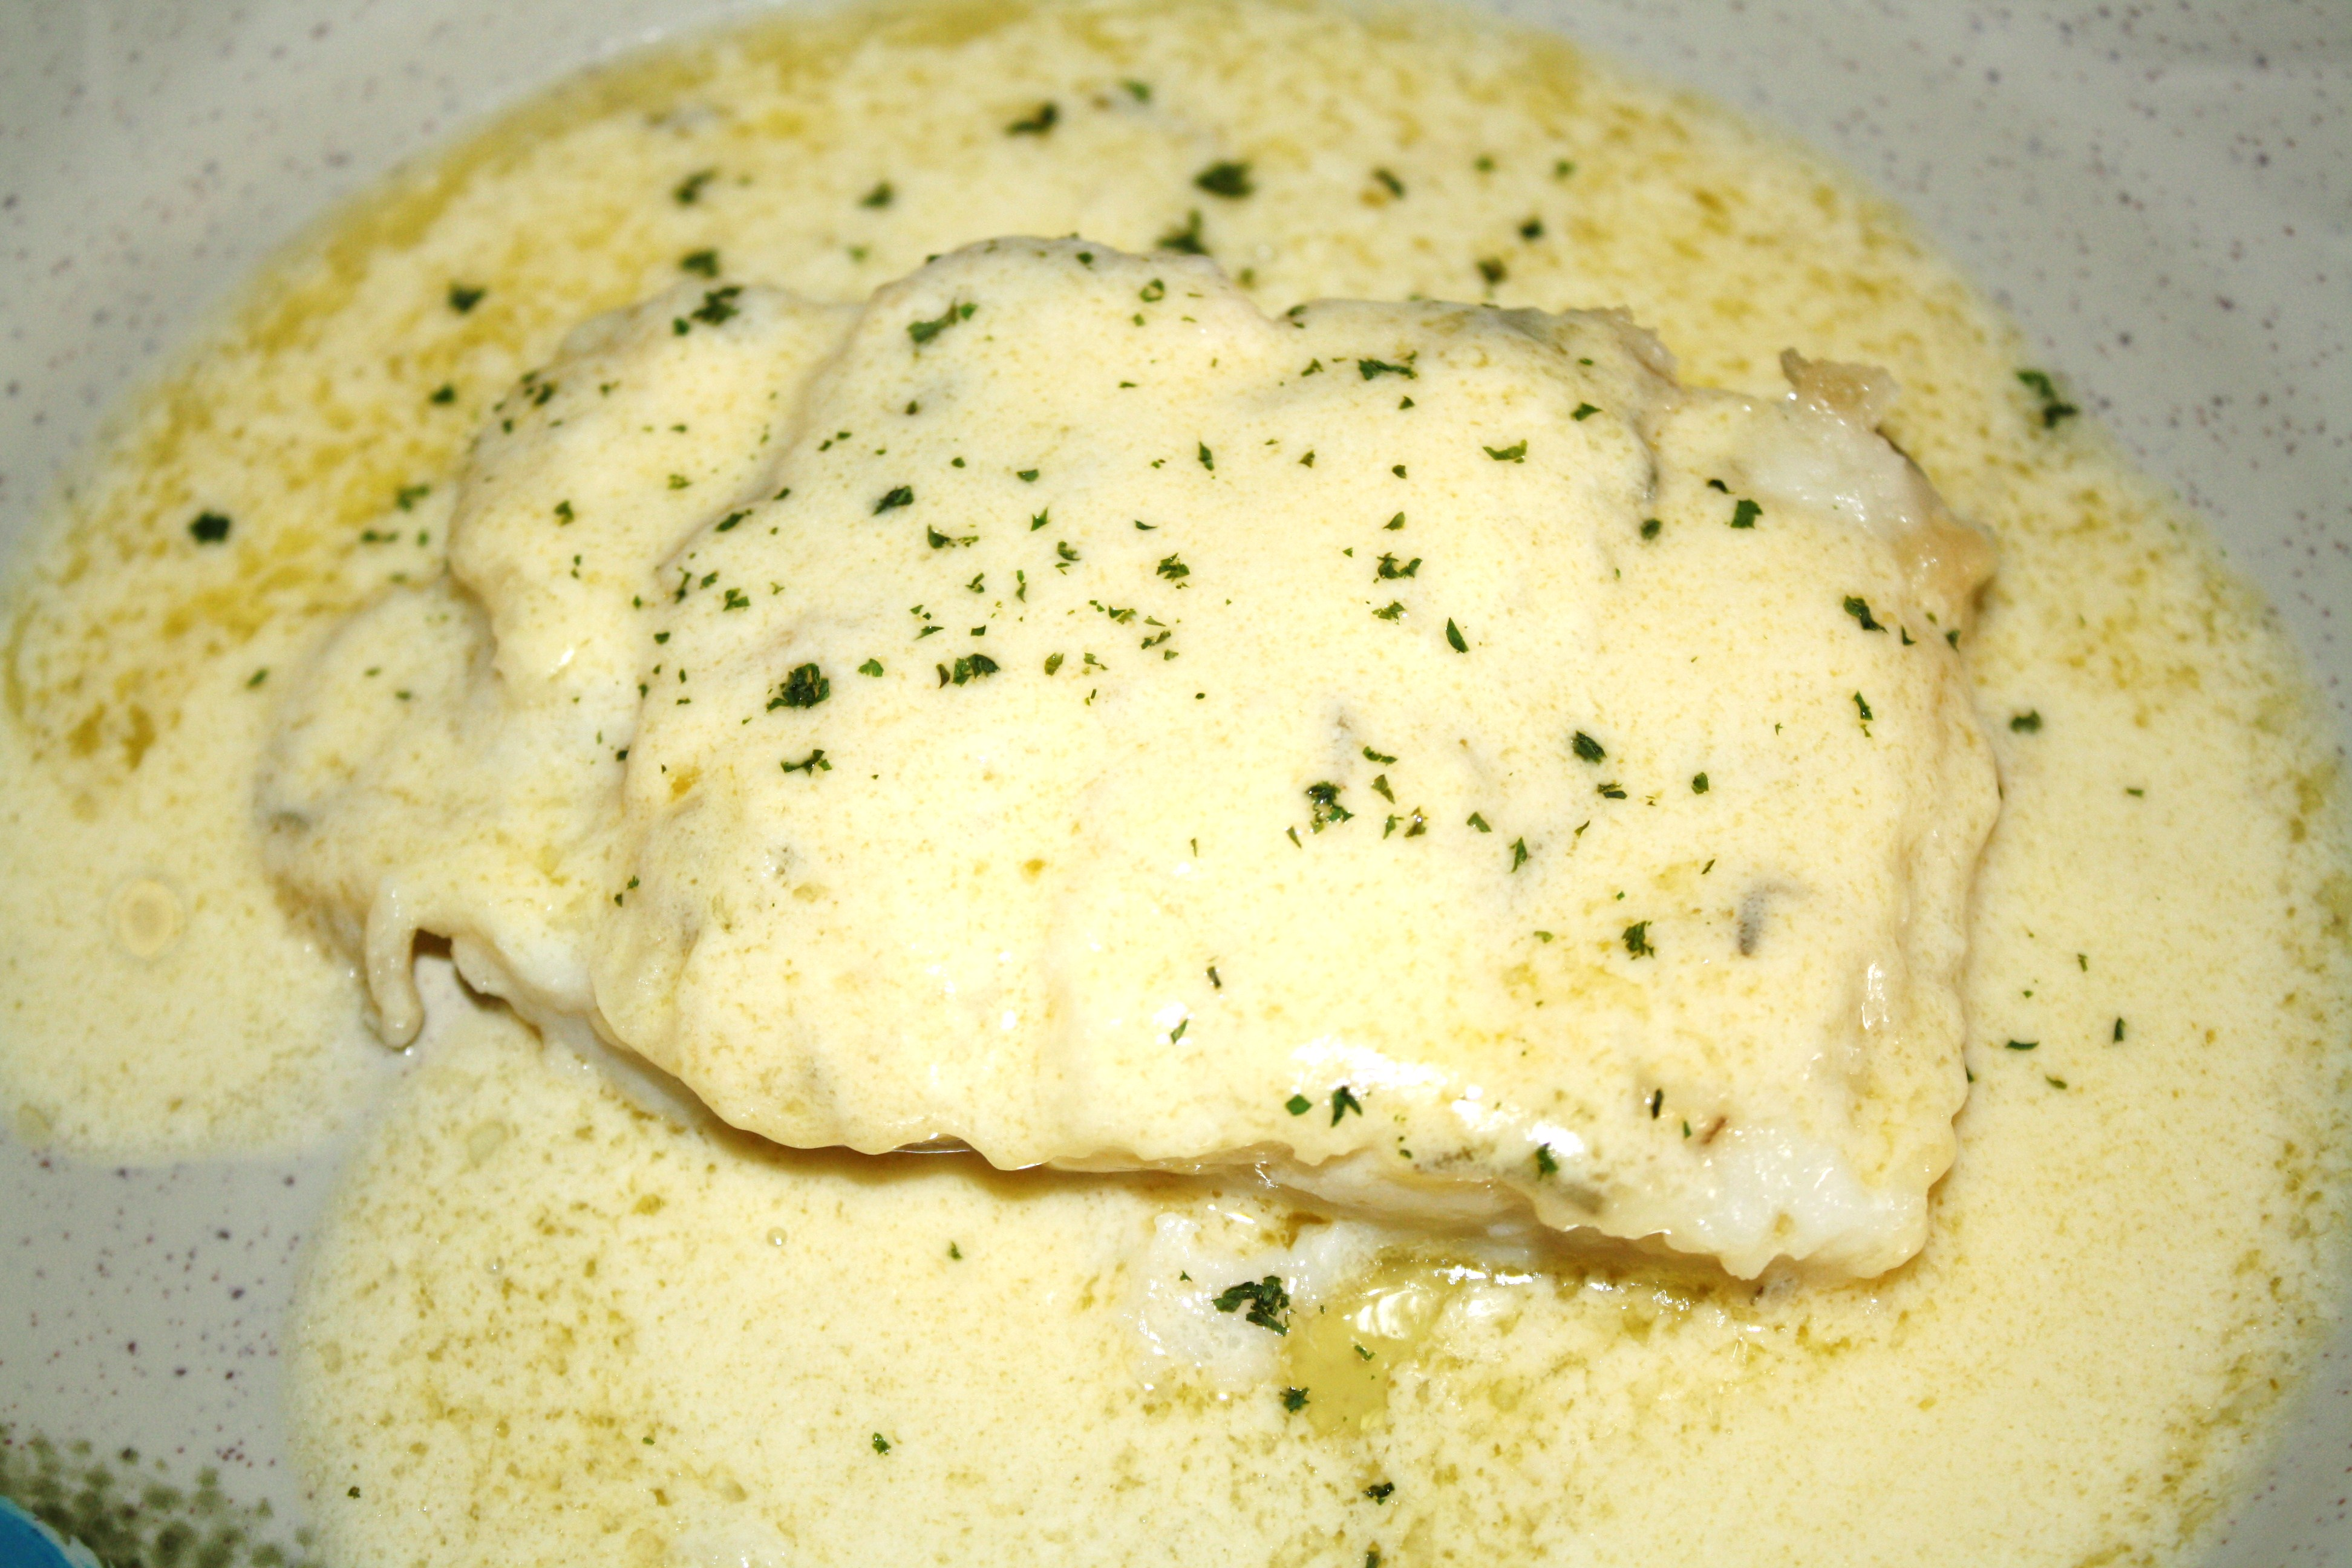 fish with lemon butter sauce my sweetpainteddreams